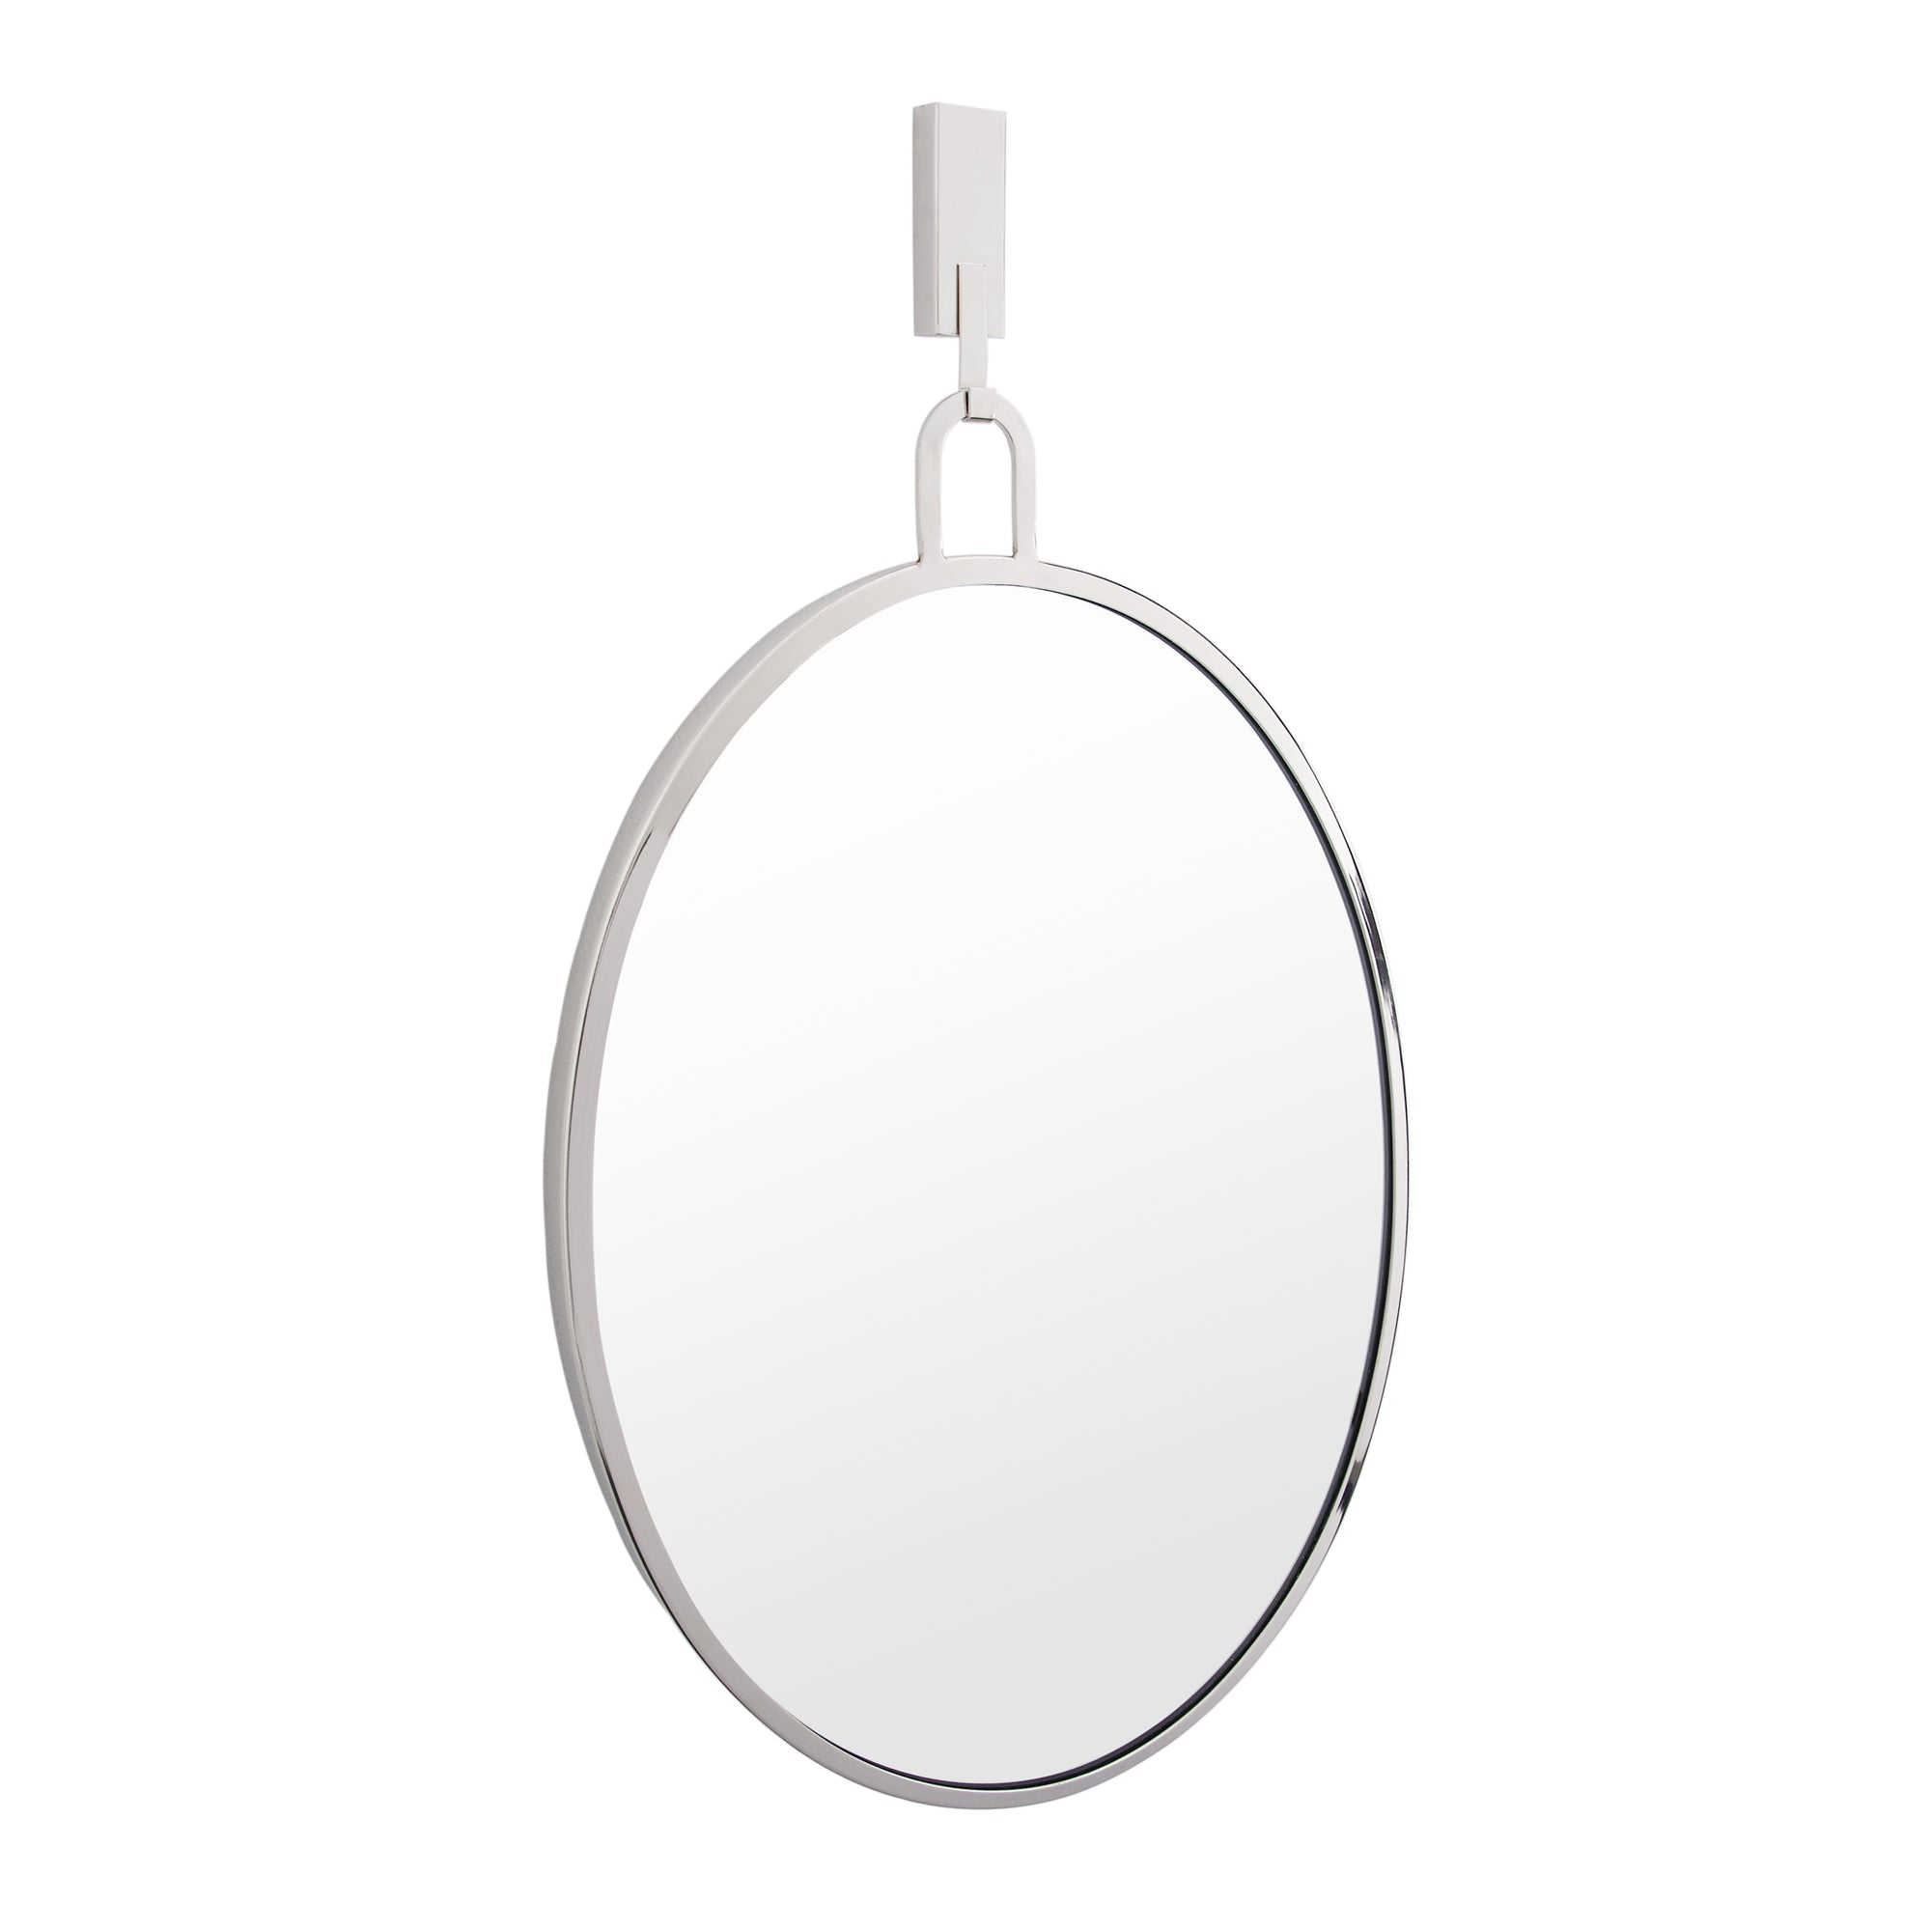 Stopwatch 22x30 Oval Powder Room Mirror - Polished Nickel 4DMI0112